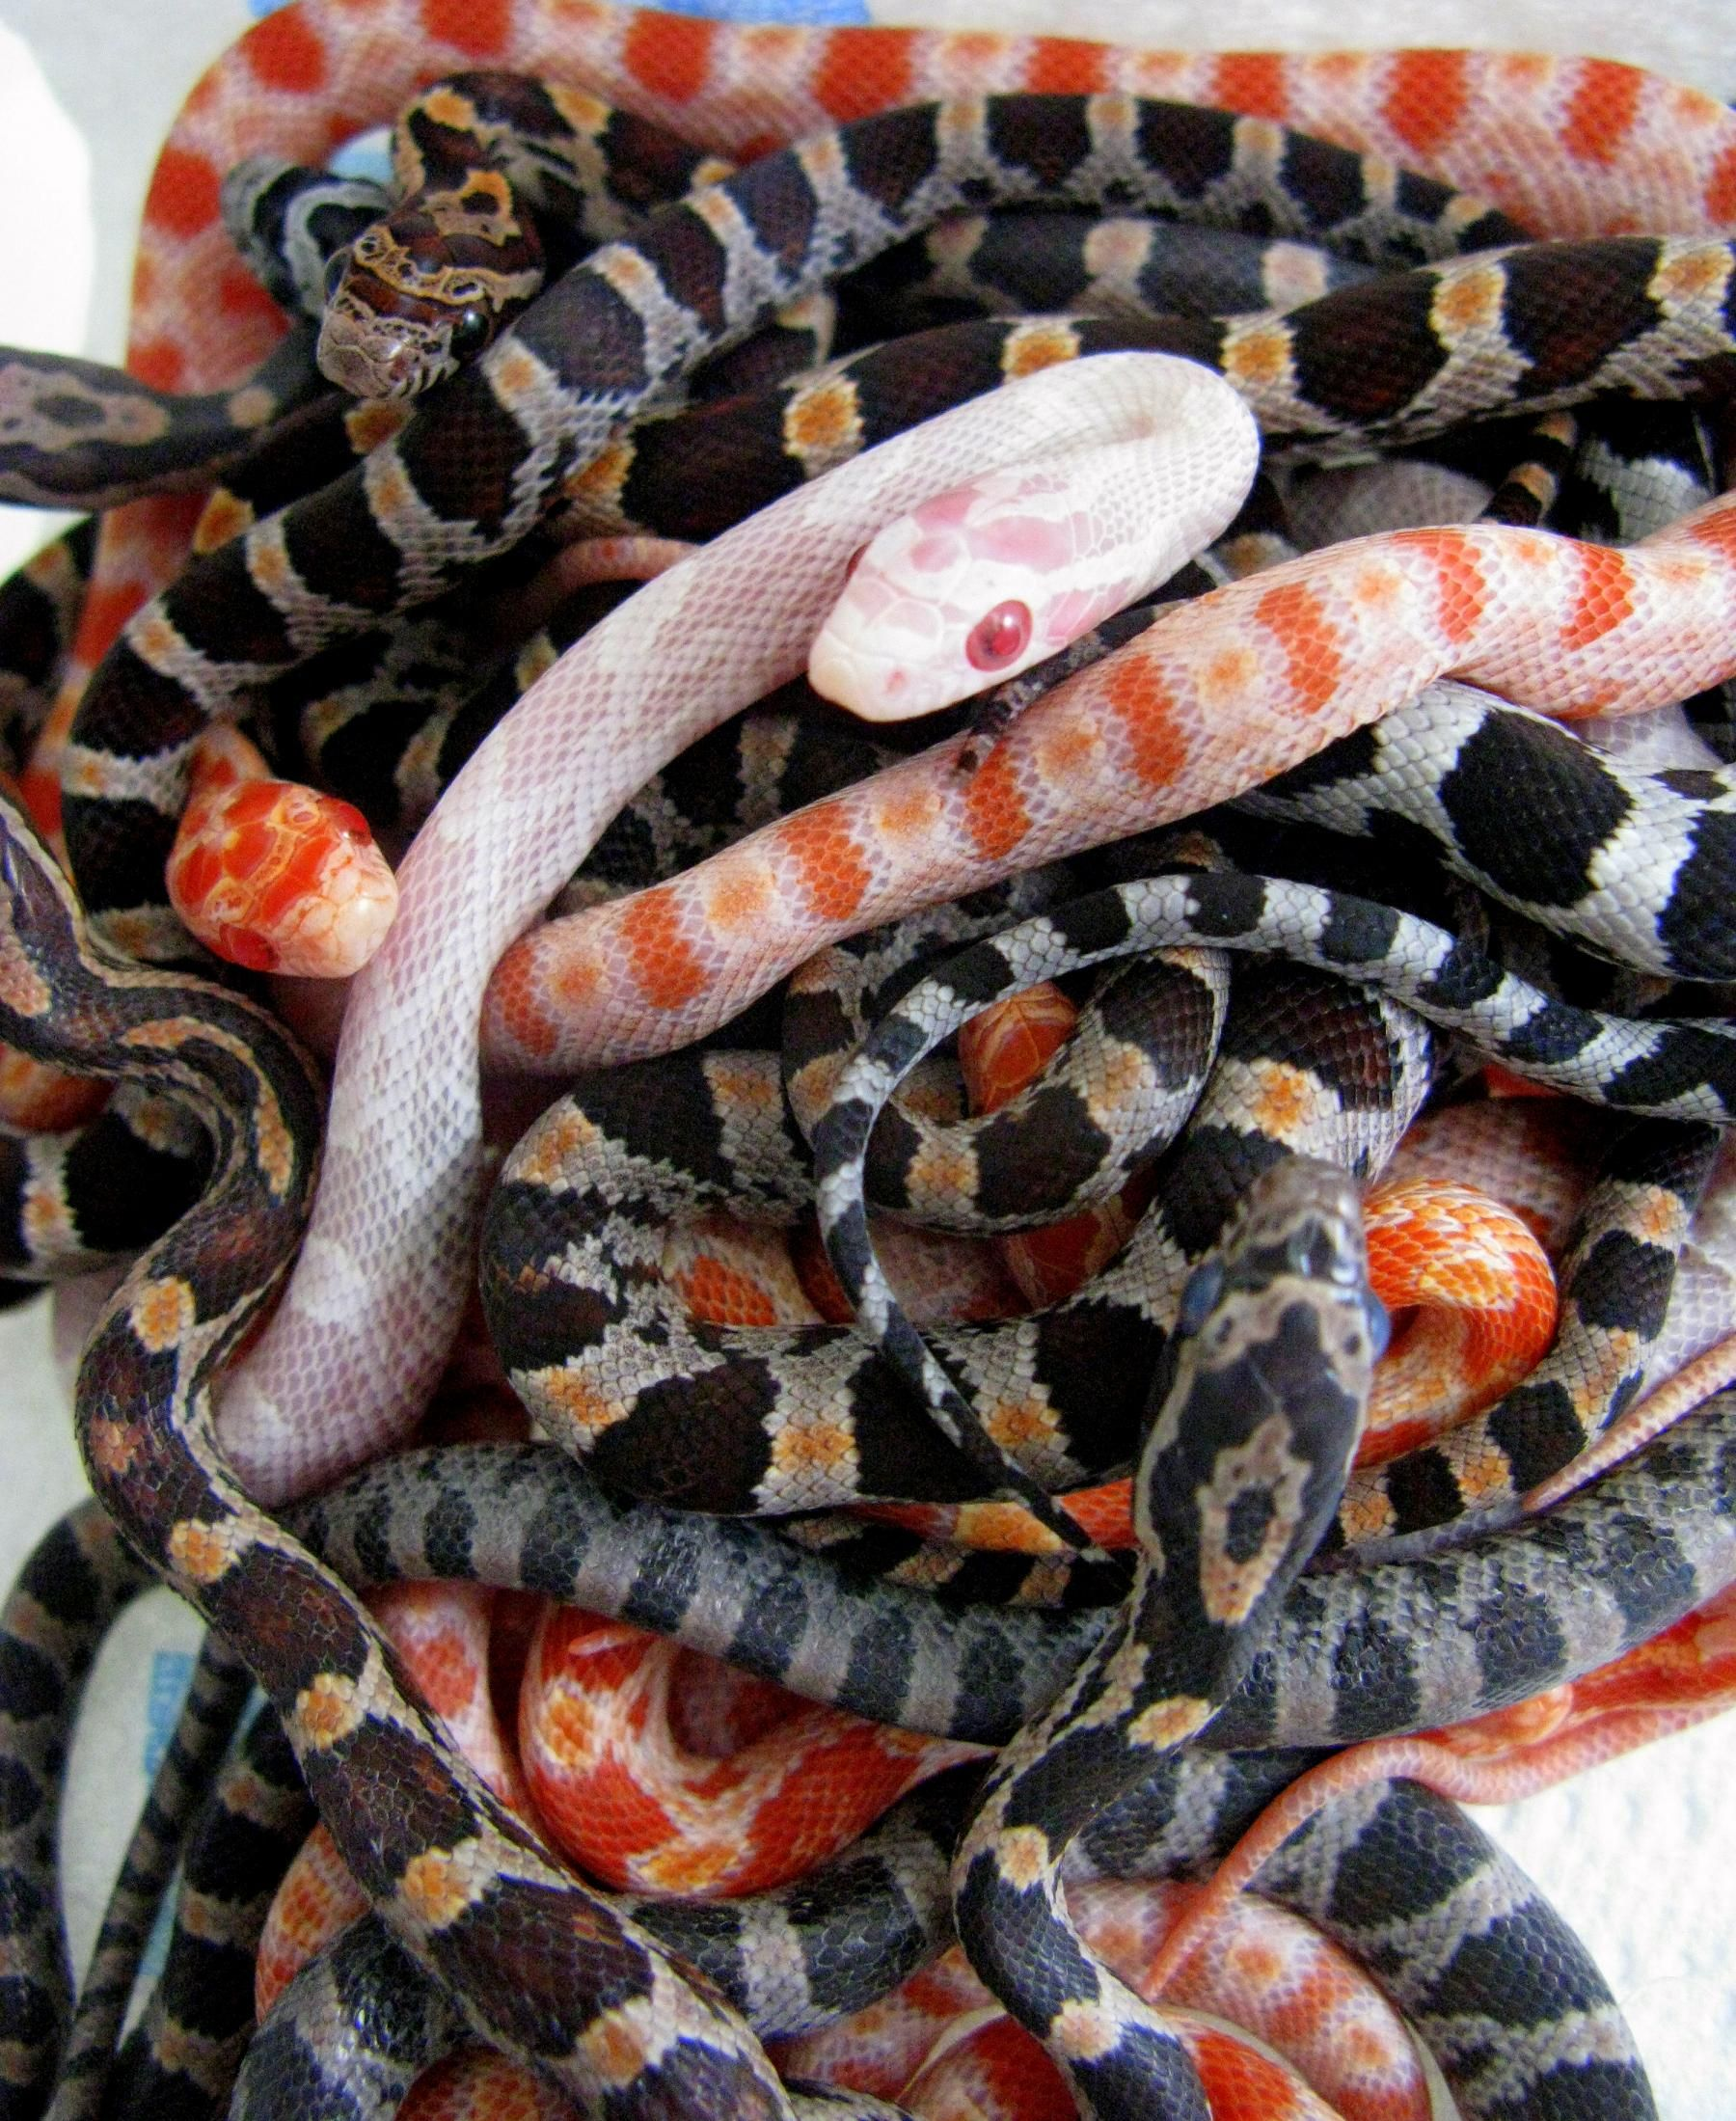 272 Best Images About Australian Classics On Pinterest: Viper, Beautiful Snakes And King Cobra